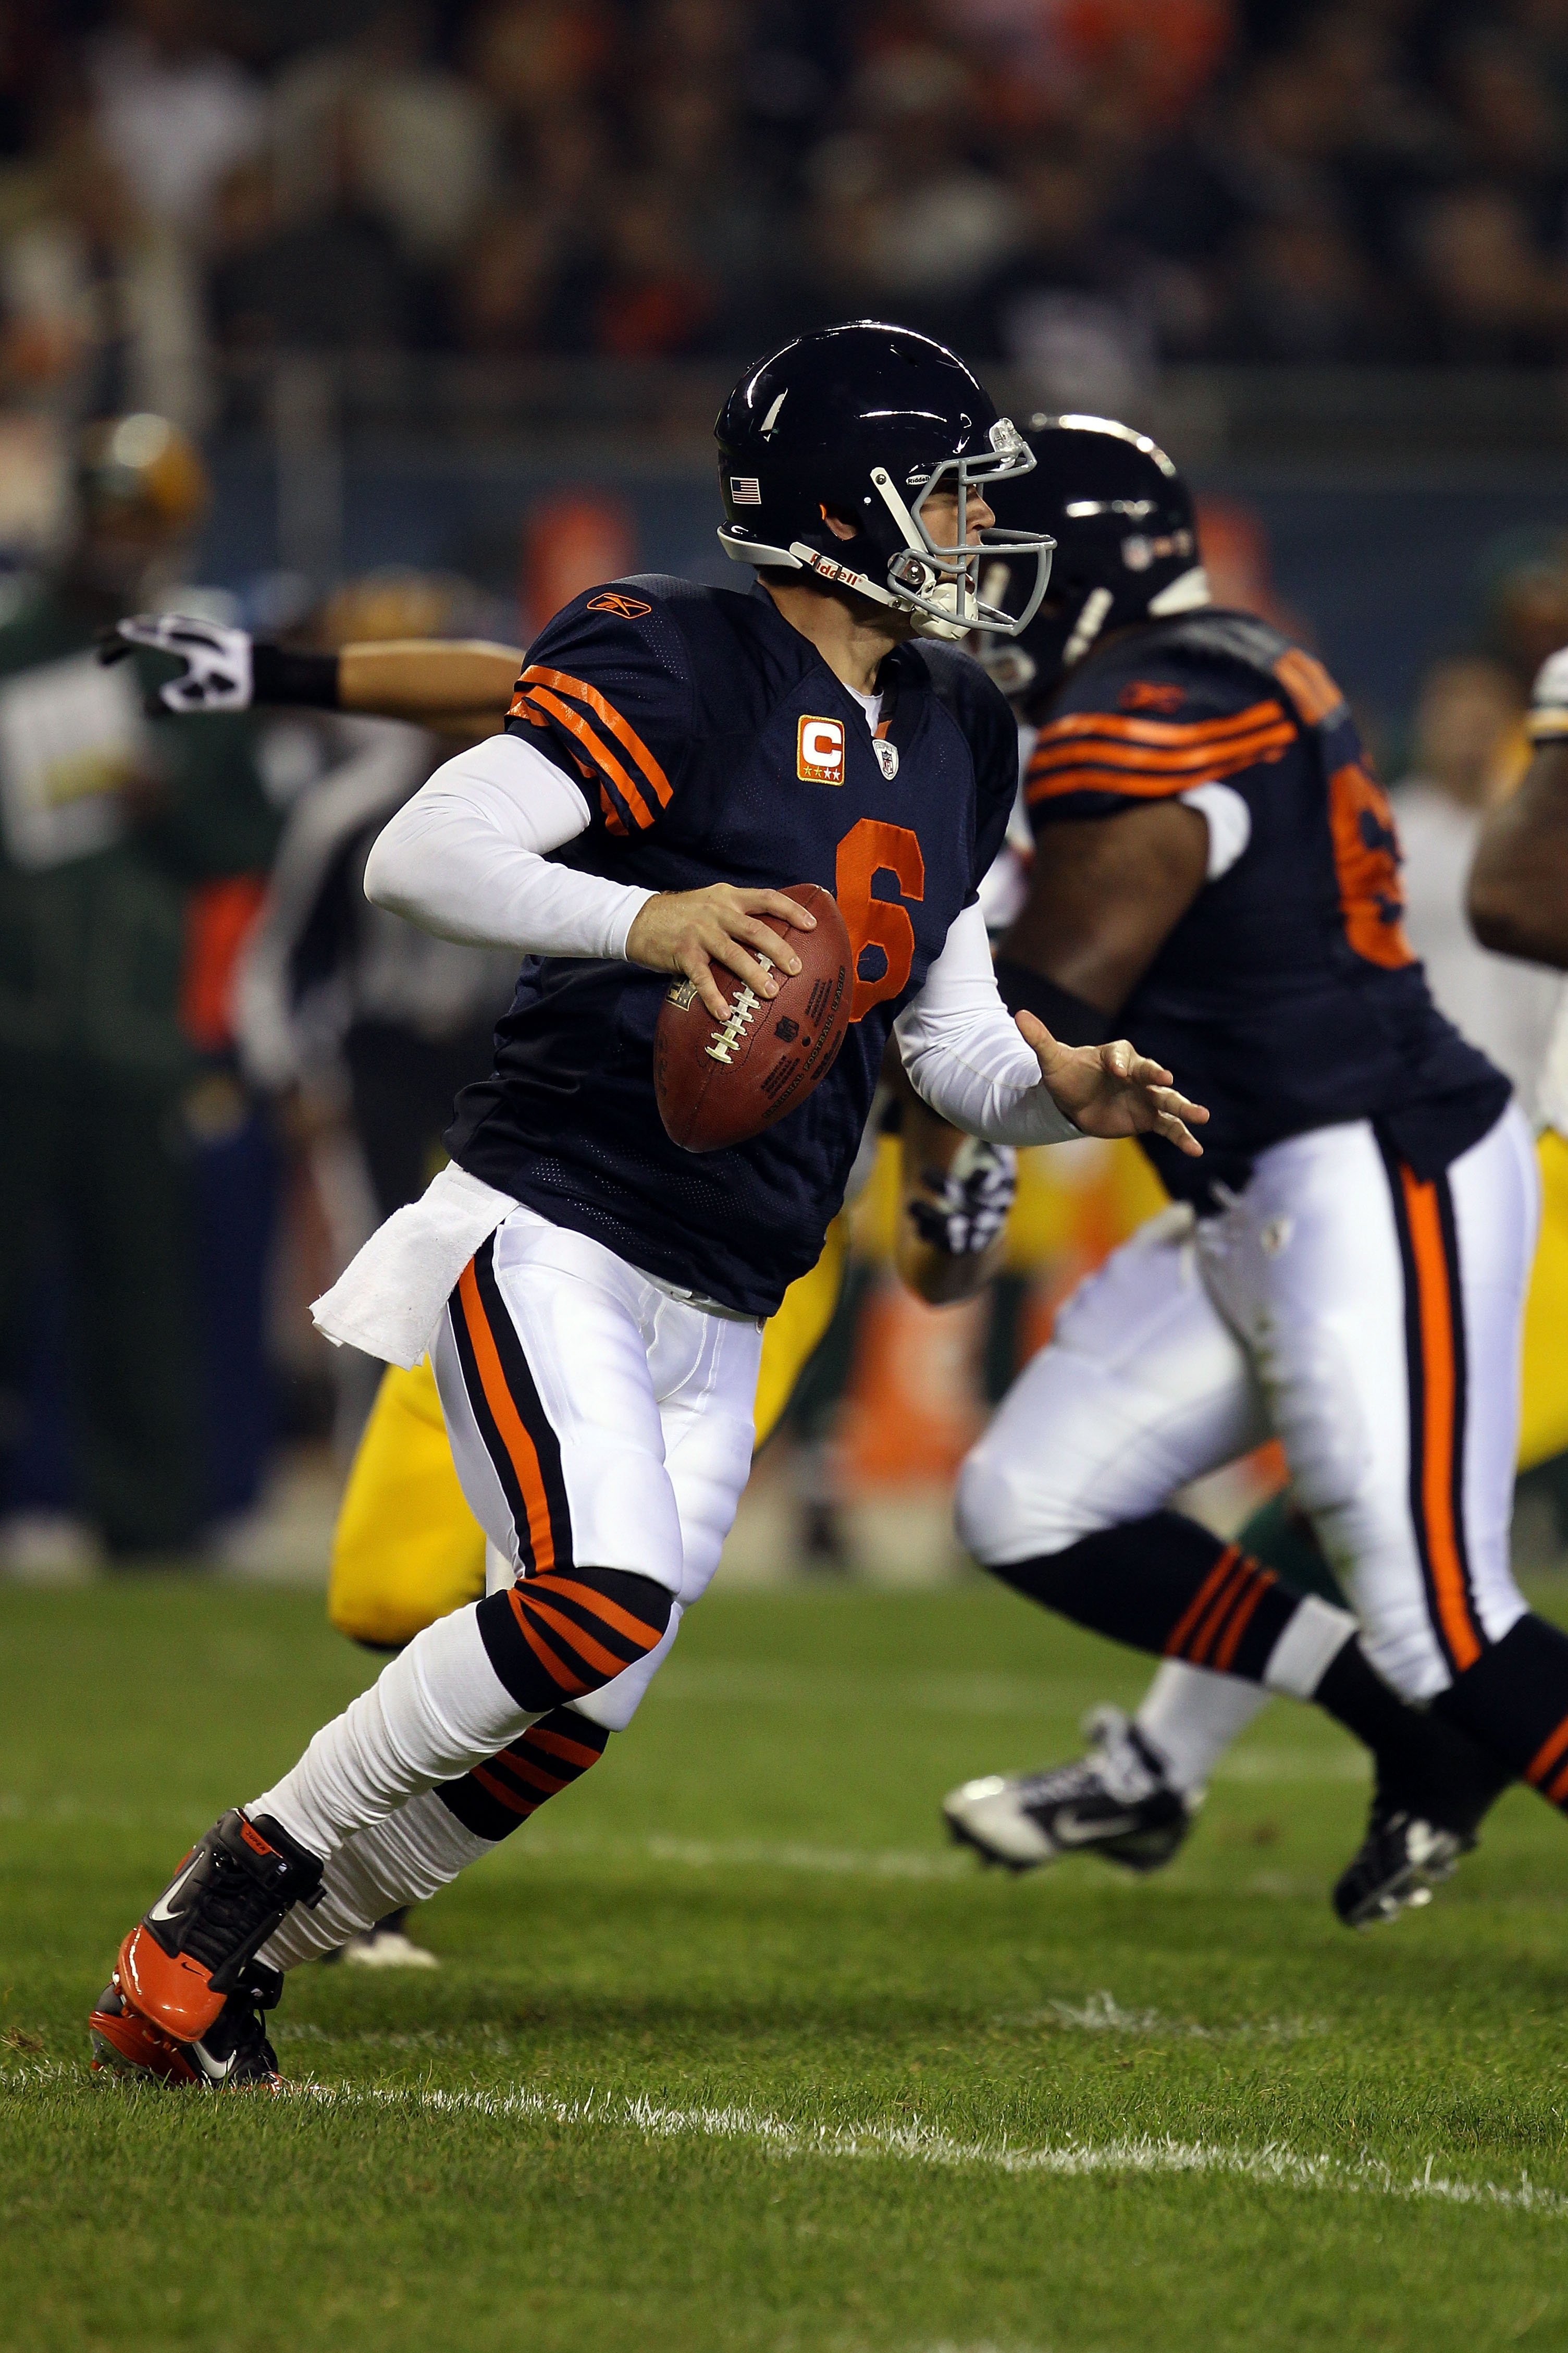 CHICAGO - SEPTEMBER 27:  Jay Cutler #6 of the Chicago Bears rolls out to pass against the Green Bay Packers at Soldier Field on September 27, 2010 in Chicago, Illinois. The Bears won 20-17.  (Photo by Jonathan Daniel/Getty Images)